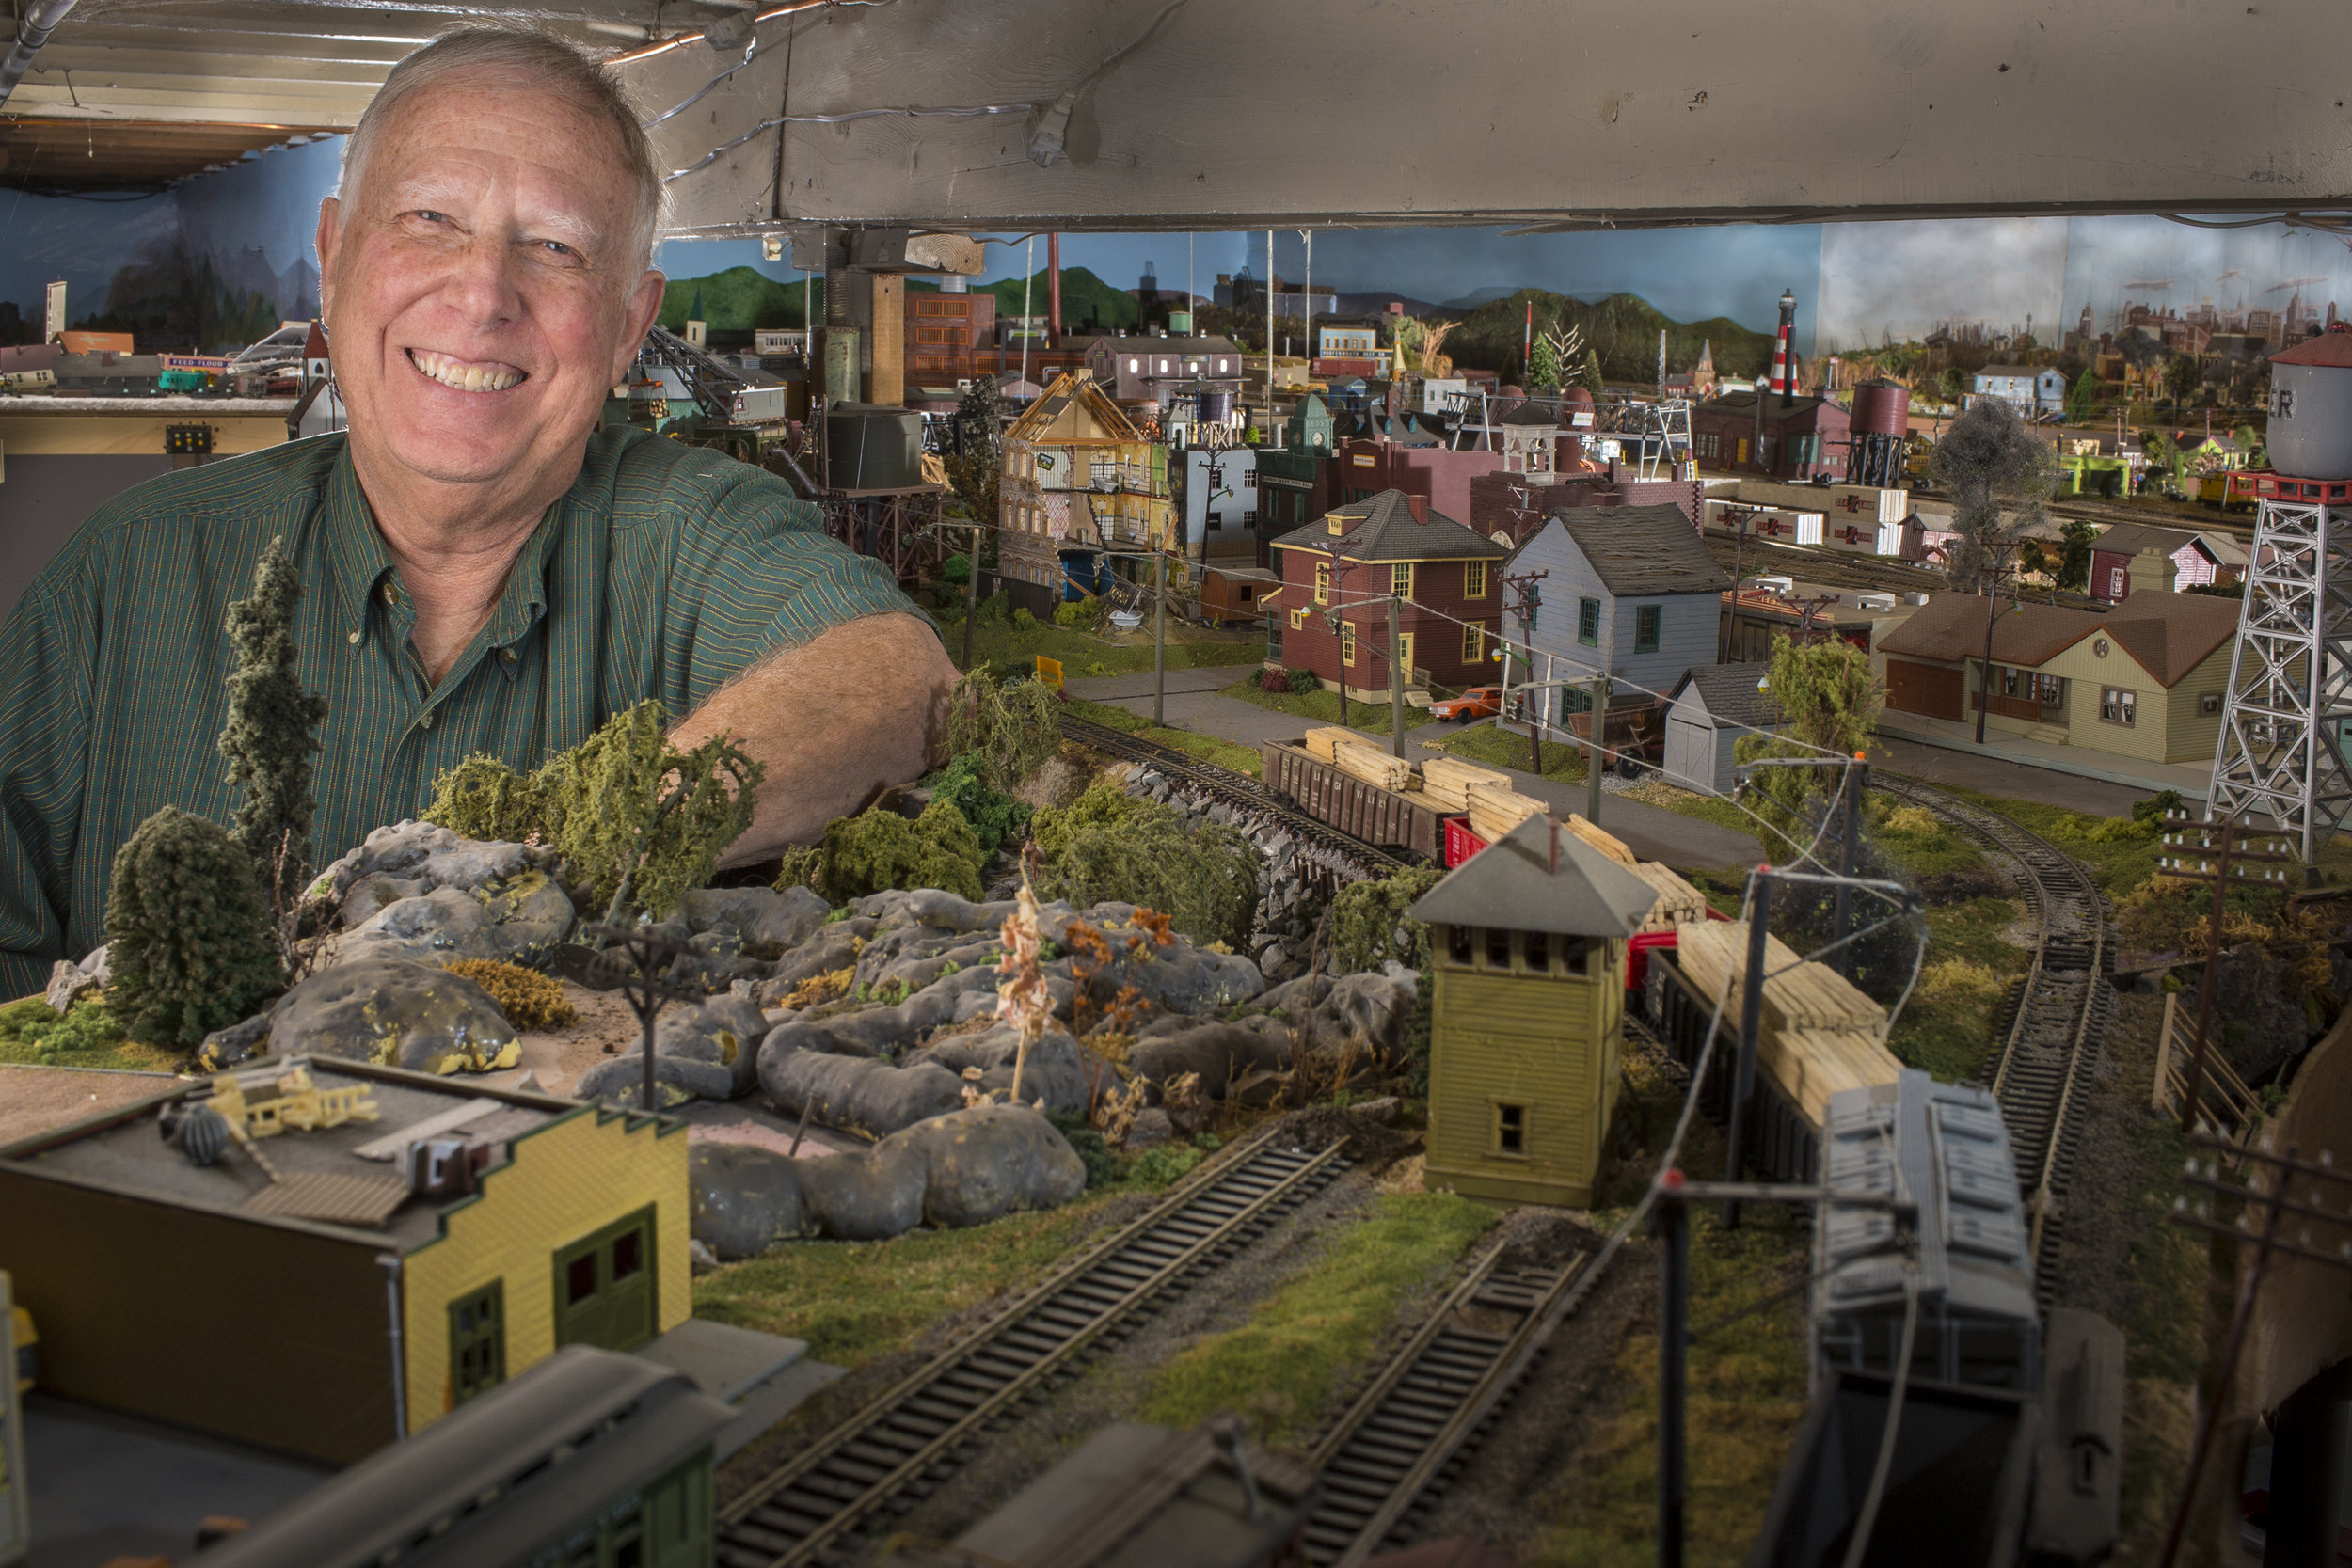 Harley Watts, 73, of Glenburn, Maine has been interested in trains from a young age. With his father working for the Santa Fe Railroad in Iowa, Watts and his brother spent many hours at the train station with their dad, hoping to spot the smoke of the steam engines as they arrived. His fascination with trains and even his perspective of those trains from when he was younger became a hobby he still enjoys today. After joining the Peace Corps in the 1960s to assist agriculture in India for a couple years, Watts then joined the Army before moving to Maine. The layouts, which fill his basement, are built so that you can walk through them at eye level. This perspective is reminiscent of how he saw trains as a kid, and allows others to share that perspective. His collection, including roughly 800 feet of track, 20 diesel engines, 10 steam engines and at least 240 cars snakes through the various towns he's created—with Watts' sense of humor sprinkled throughout the designs as visual jokes. If you know Harley Watts well, there's a good chance something in one of his towns will bare your name. Watts has visited 16 countries, earned a degree in Political Science from the University of Maine, retired from a 20-year career with GE, been married for nearly 50 years and shares his passions with four children and six grandchildren.